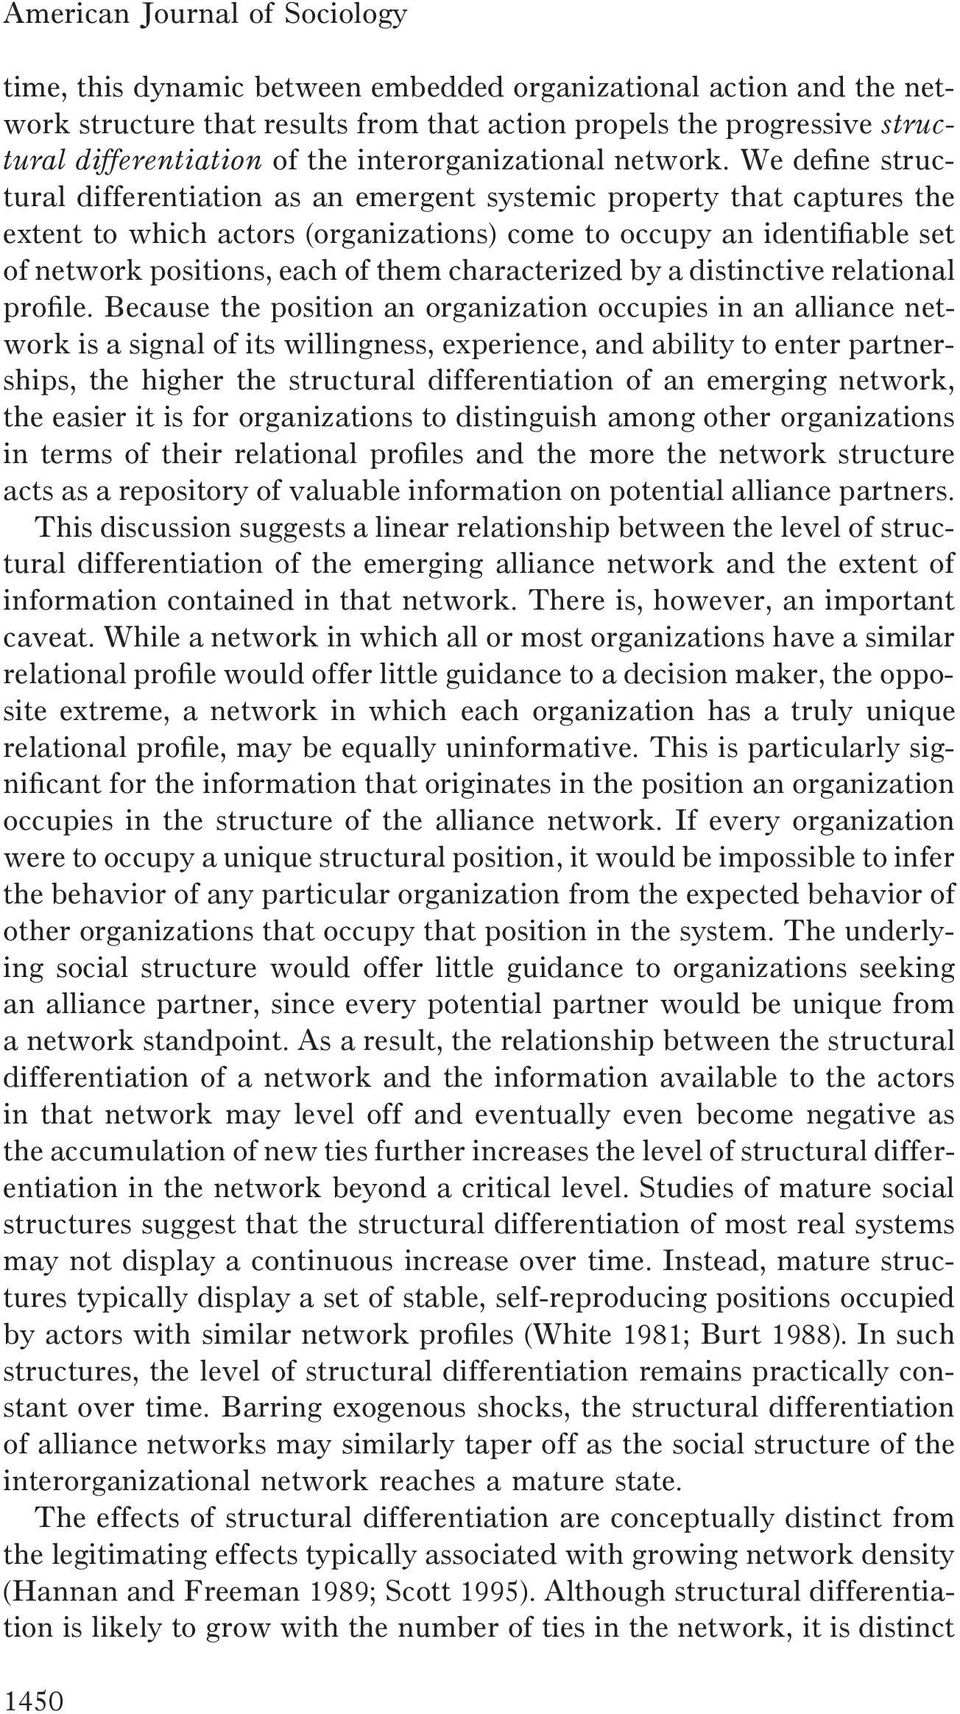 We define structural differentiation as an emergent systemic property that captures the extent to which actors (organizations) come to occupy an identifiable set of network positions, each of them